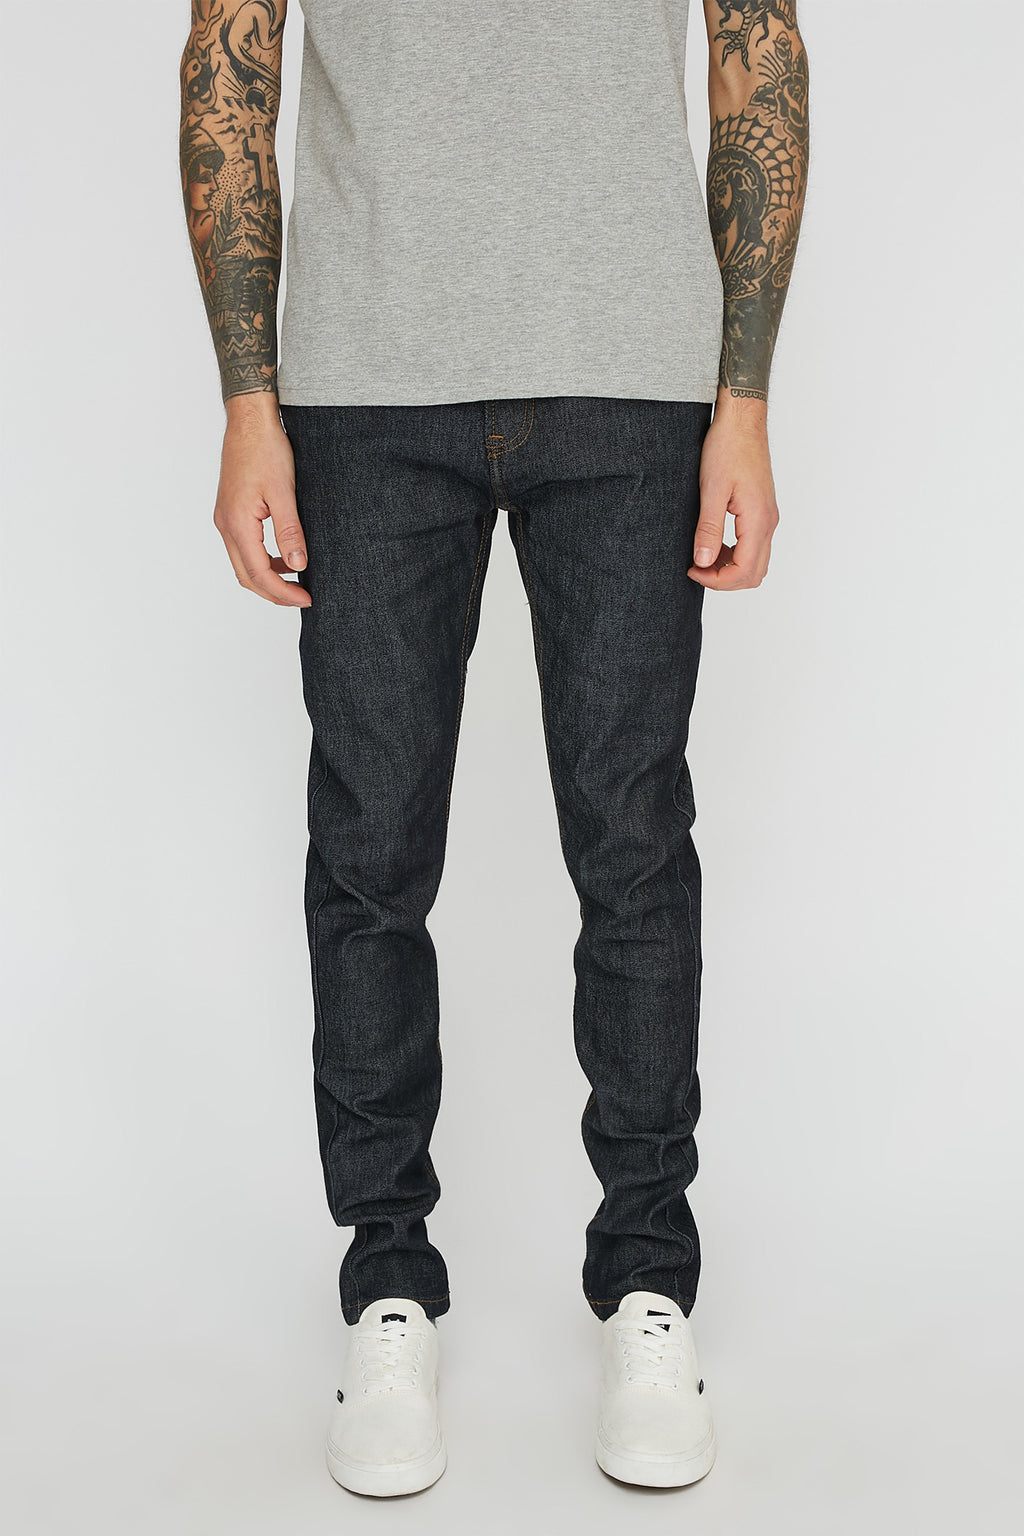 Zoo York Mens Skinny Dark Jeans